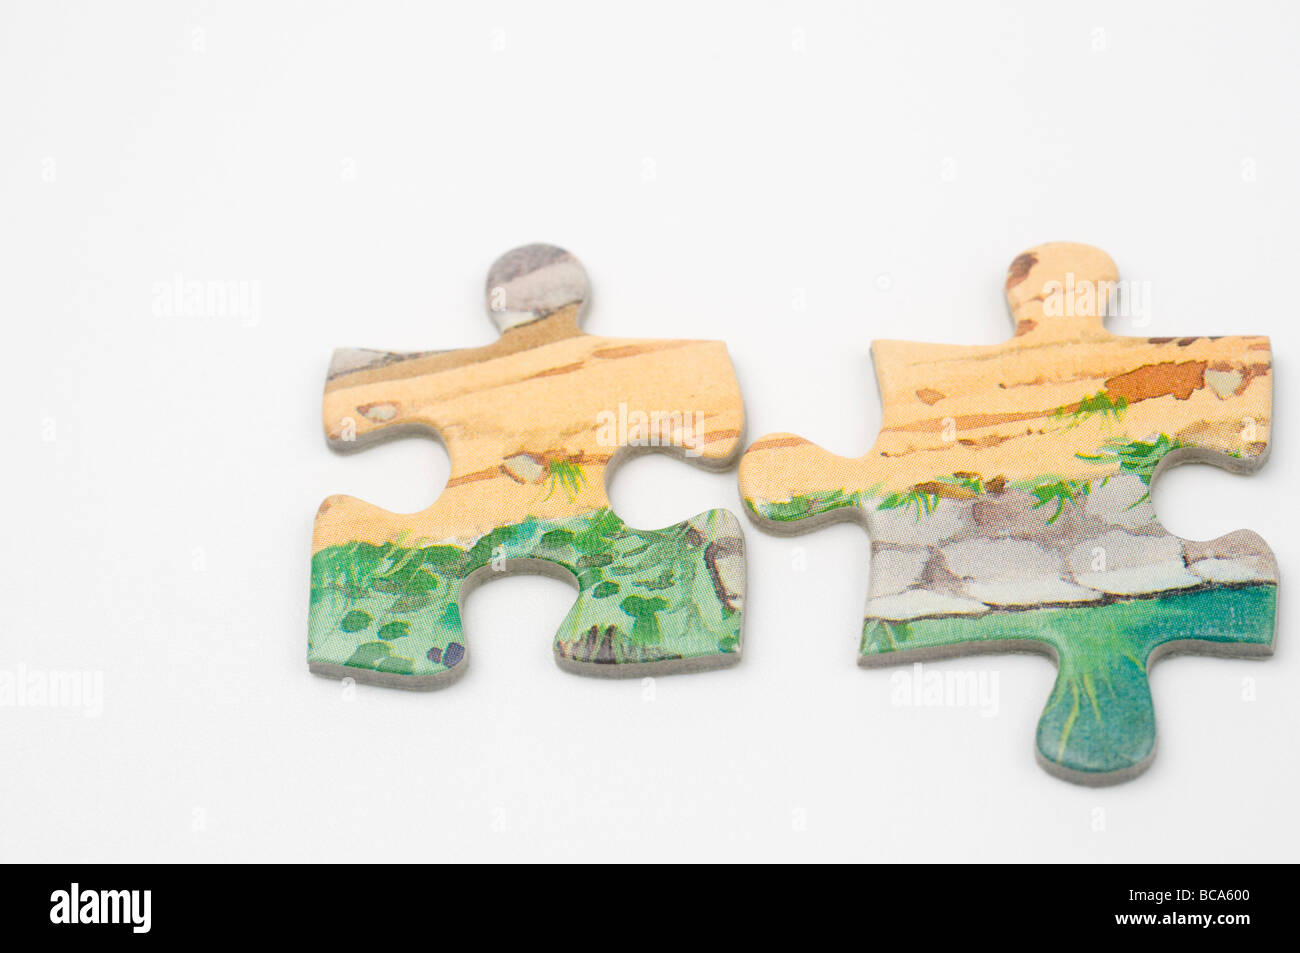 Cutout of Matching Jigsaw Puzzle pieces on white background - Stock Image